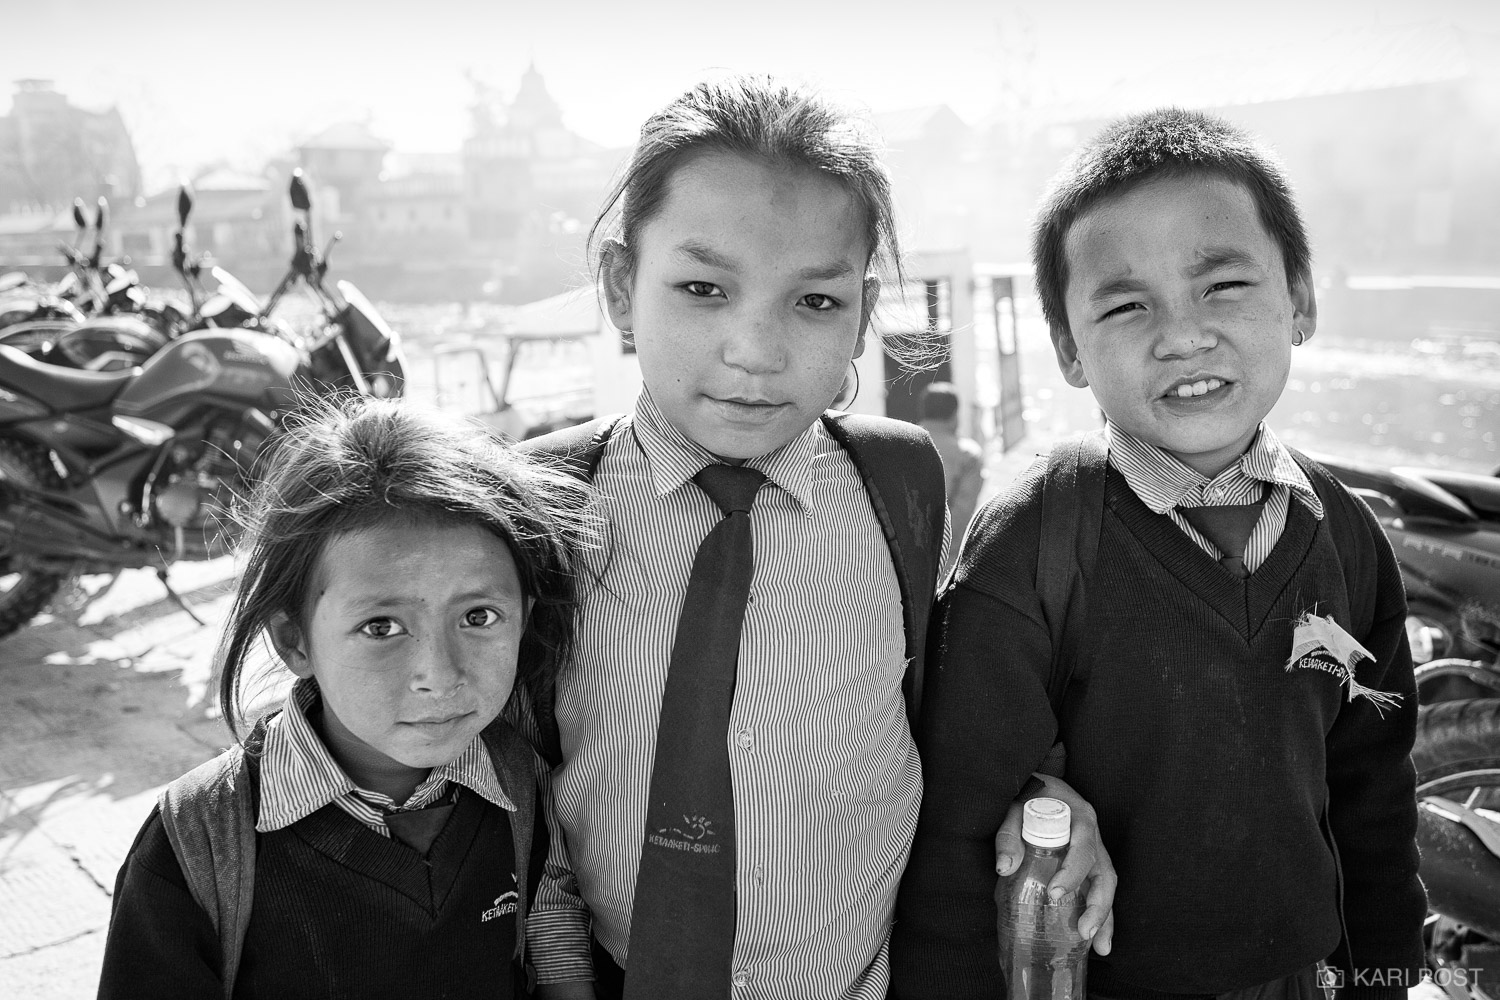 Kathmandu, Nepal, boy, child, children, girl, school uniforms, photo